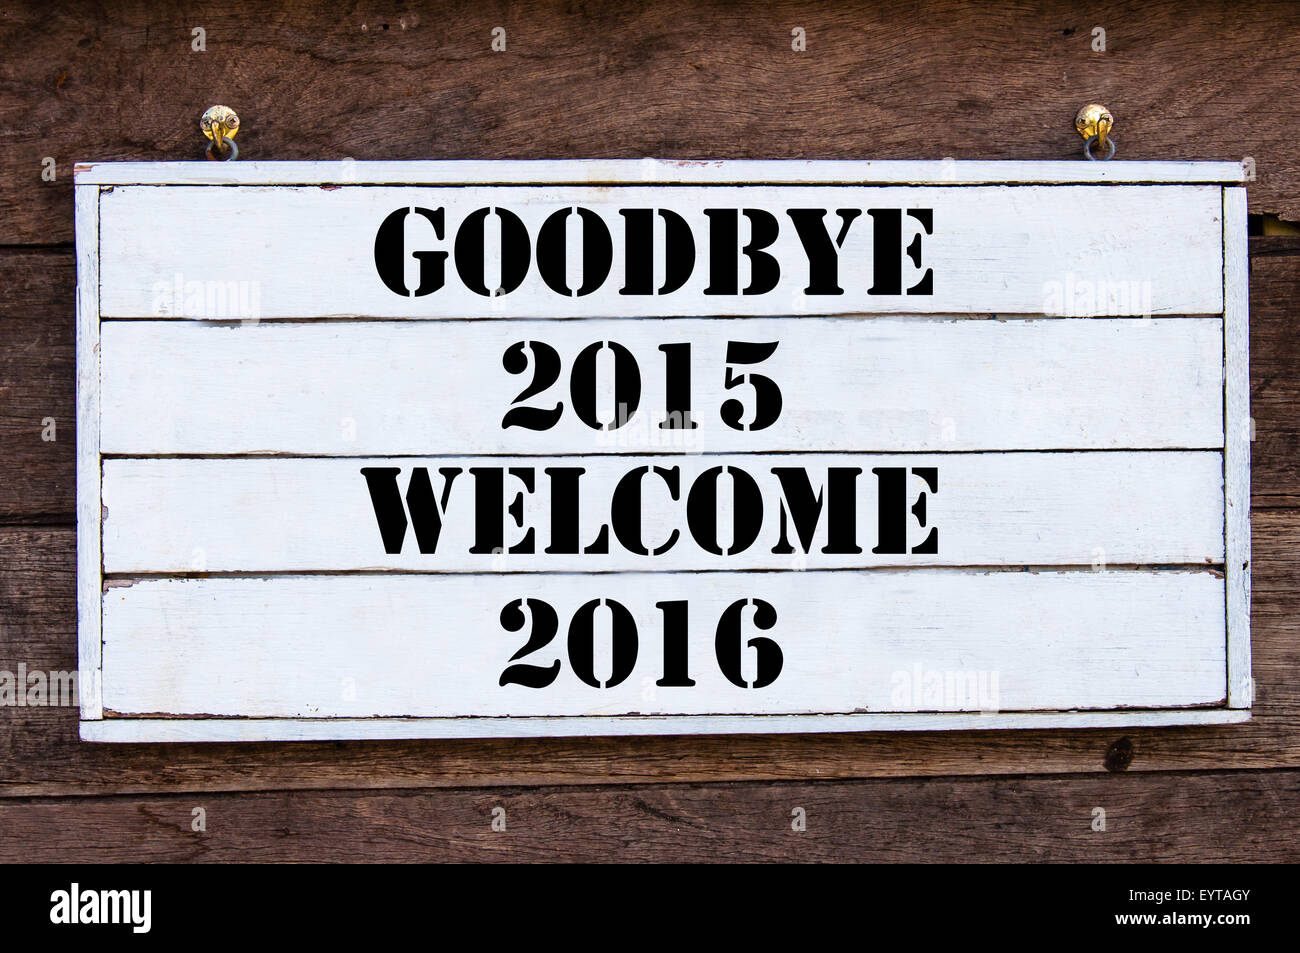 Words Of Wisdom For New Year Stock Photos & Words Of Wisdom For New ...